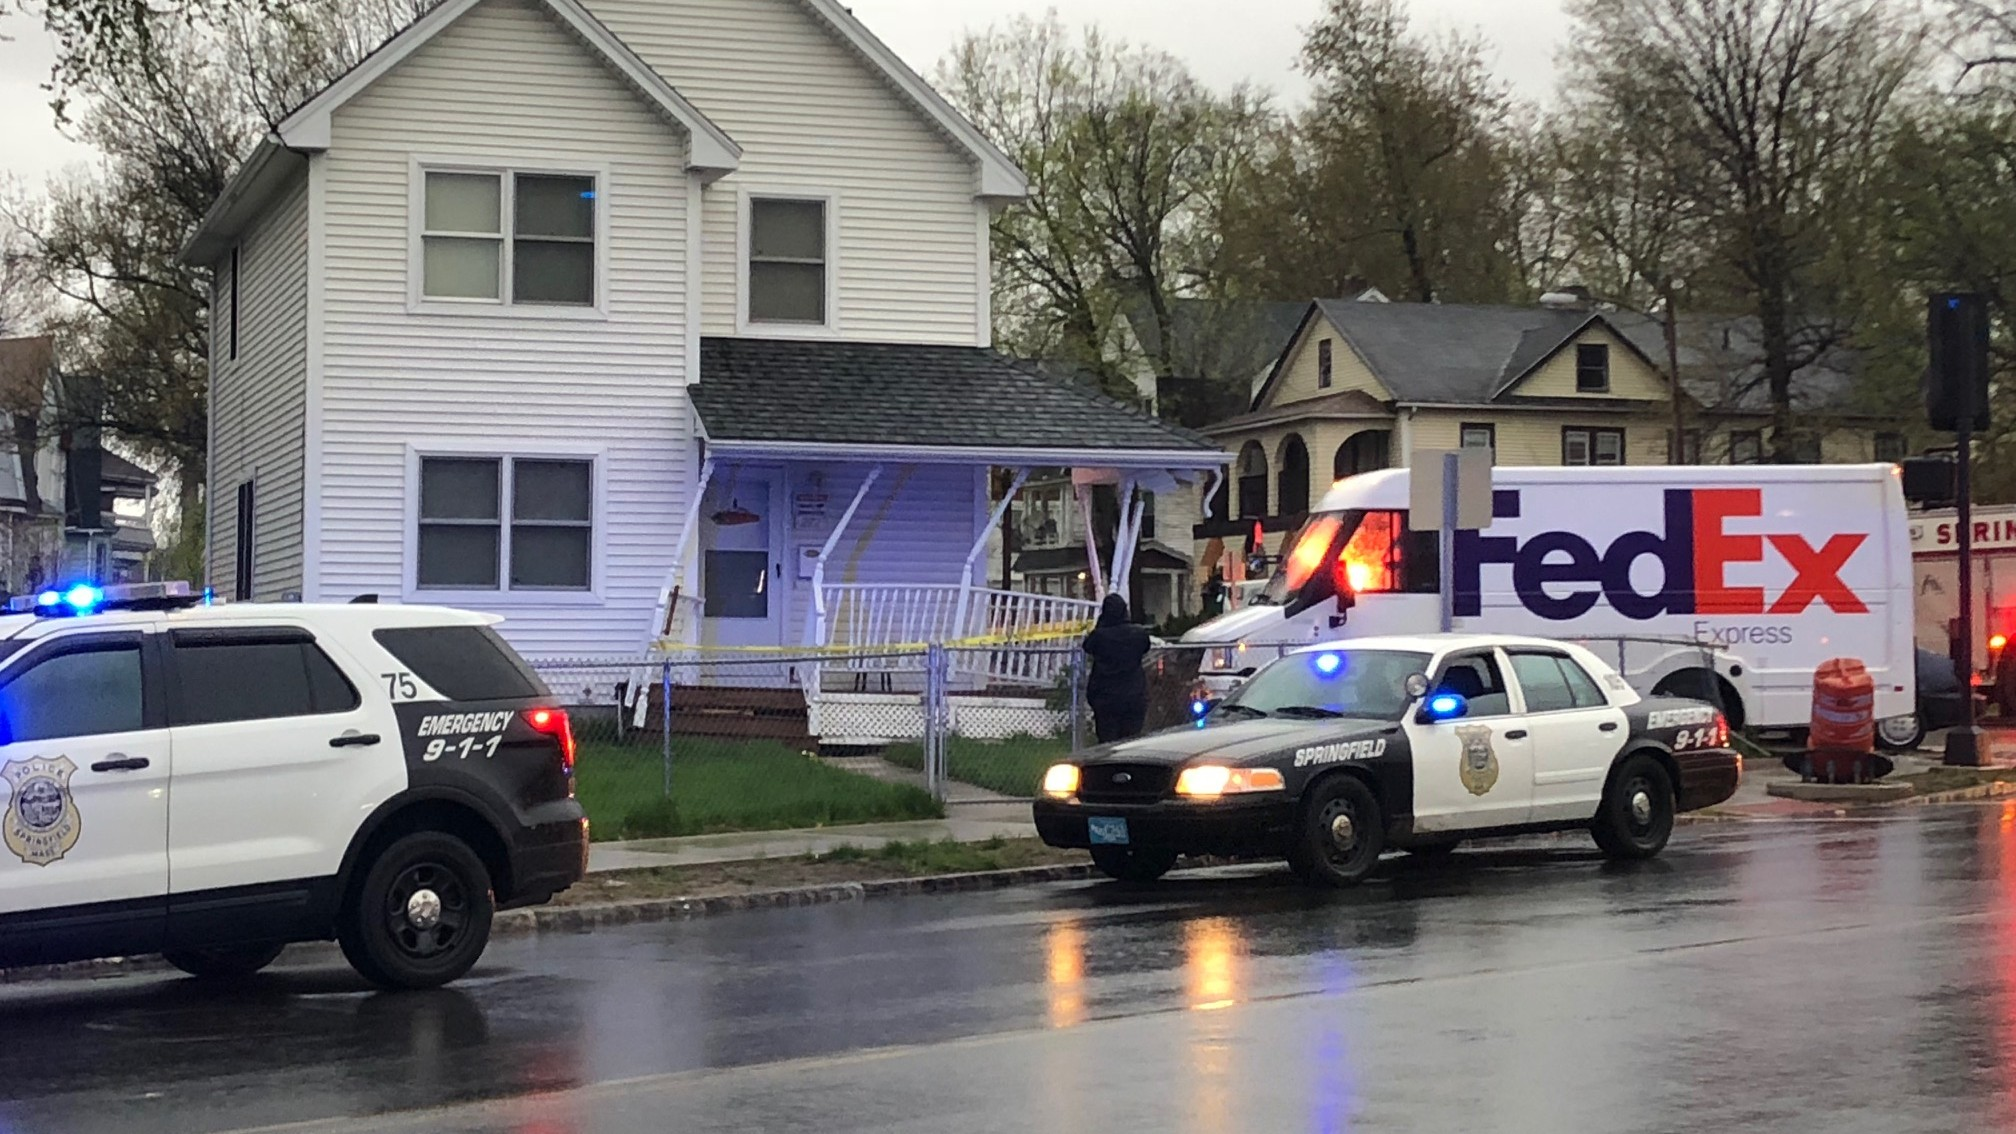 FedEx truck crashes into building on Carew Street in Springfield